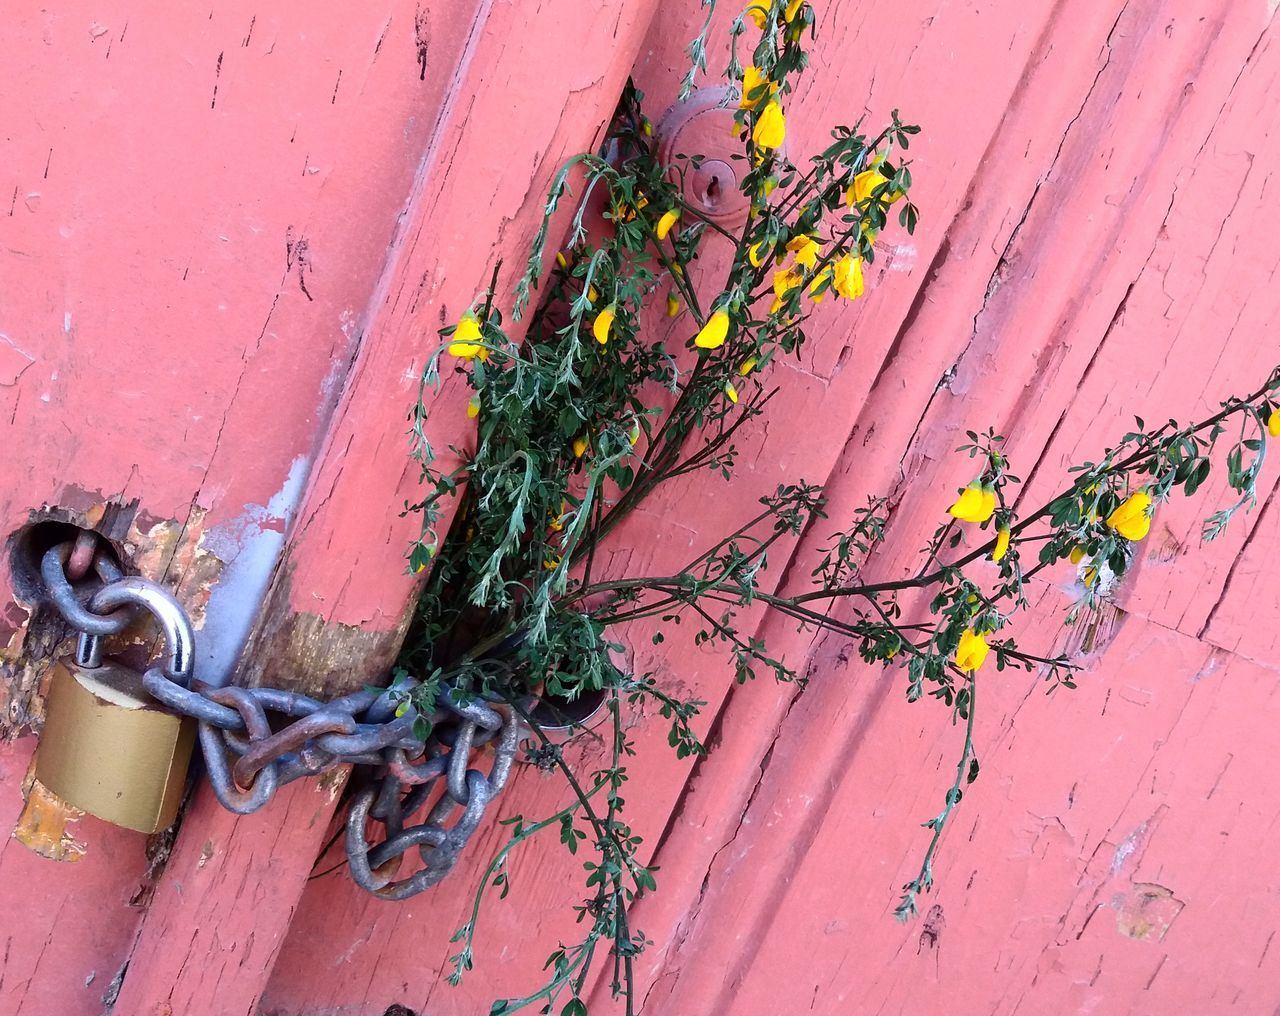 Close-Up Of Locked Wooden Door With Dried Flowers